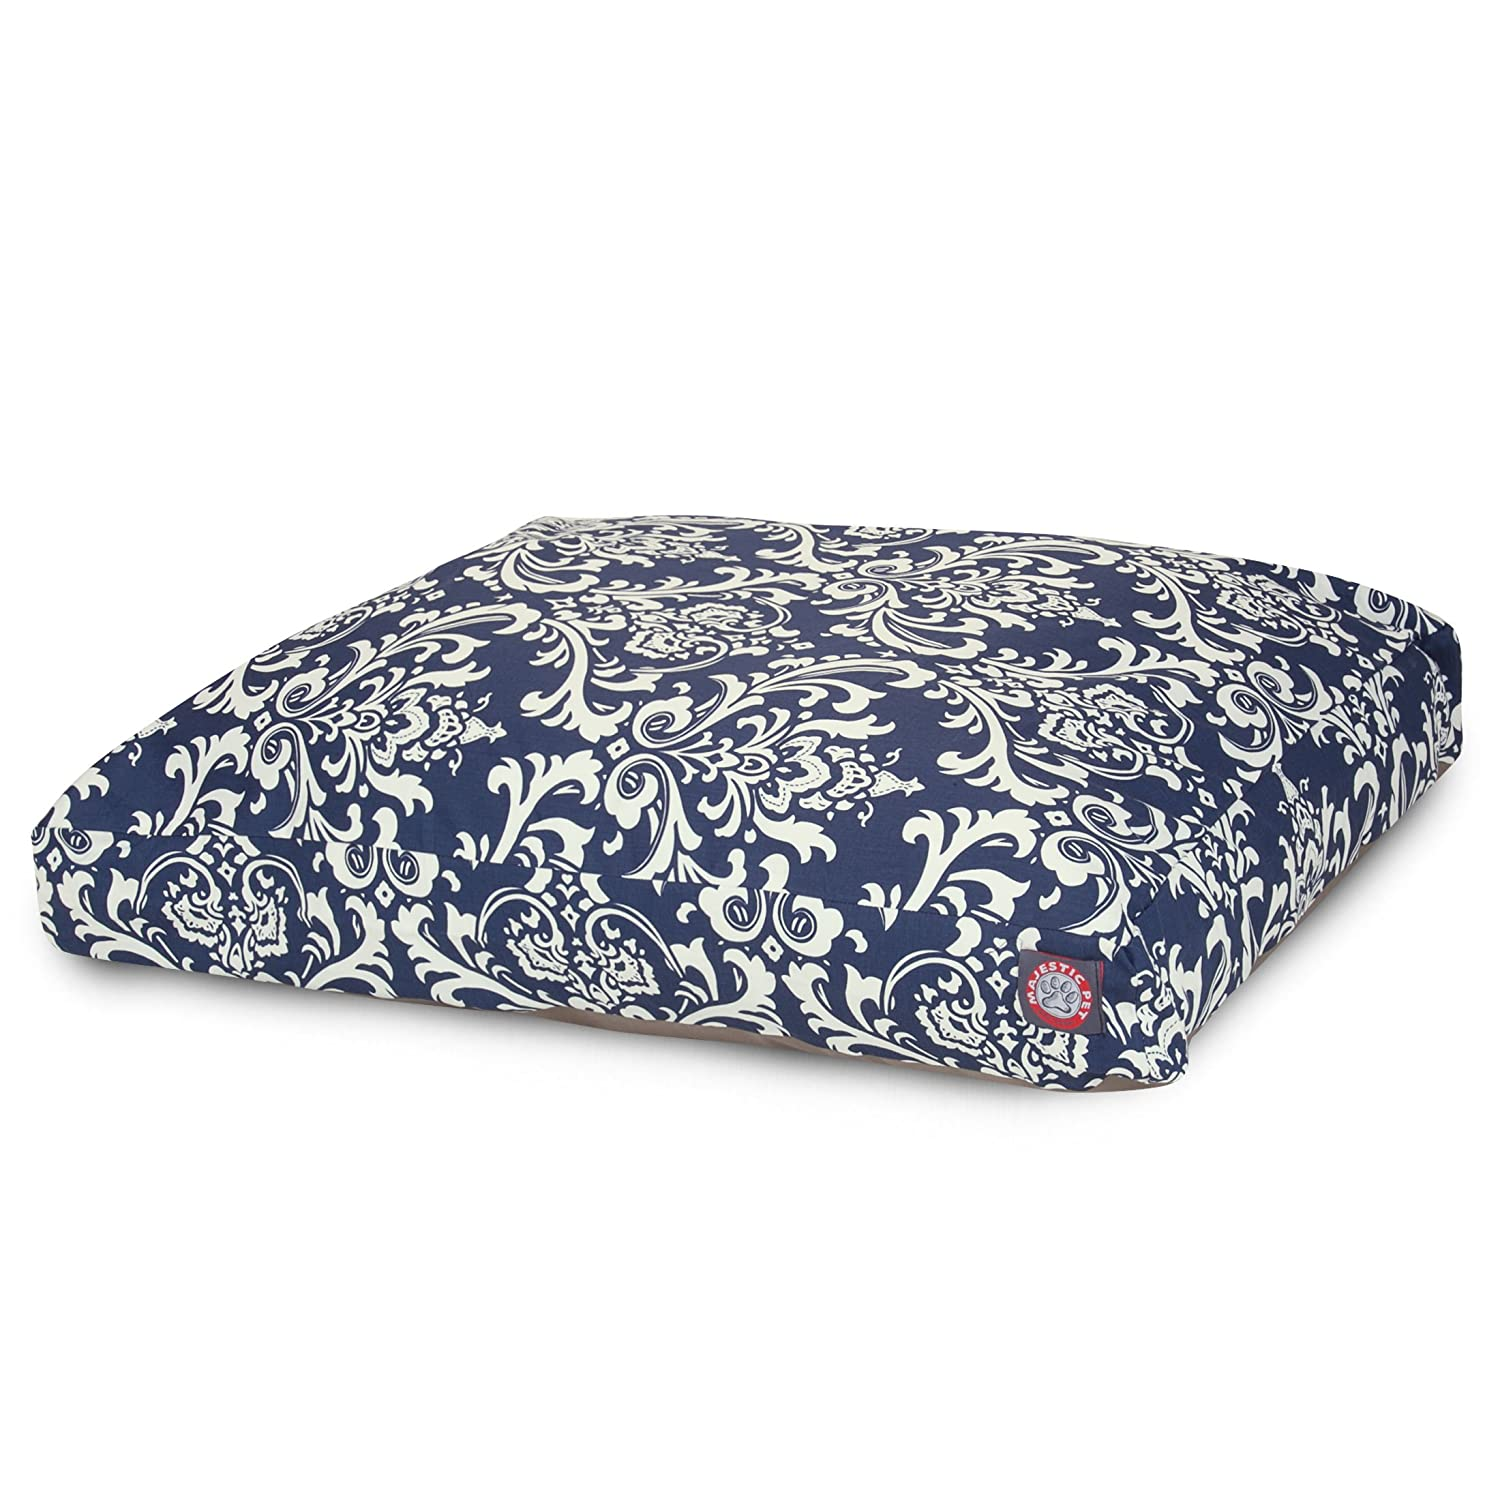 Navy bluee X-Large Navy bluee X-Large Majestic Pet Large Rectangle Pet Bed, Navy bluee French Quarter